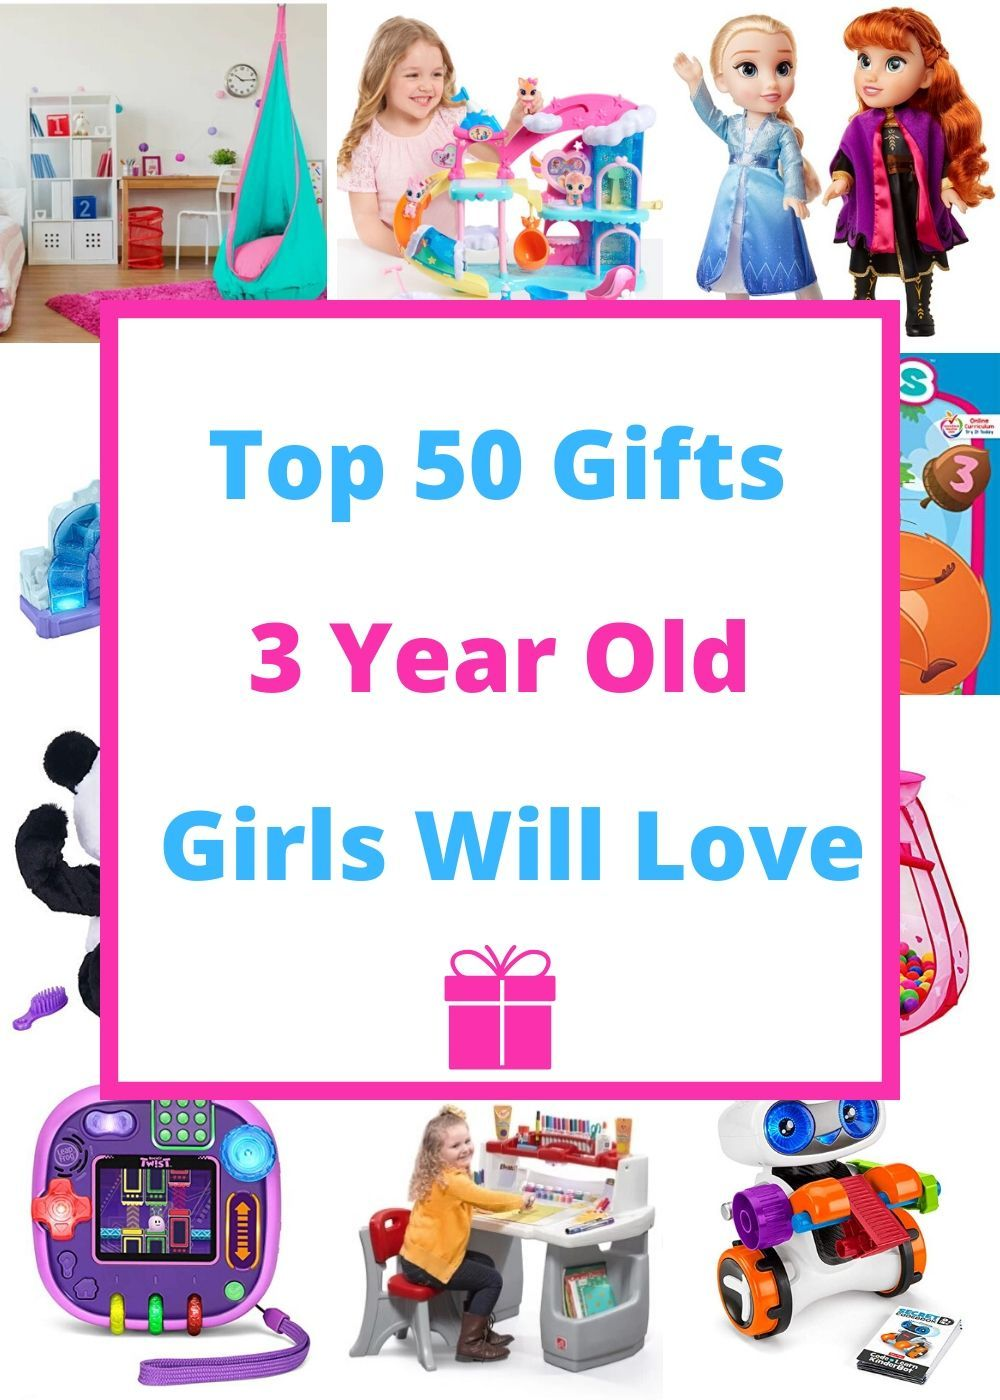 Best Toys Gifts For 3 Year Old Girls 2021 Absolute Christmas Gifts For 3 Year Old Girls 3 Year Old Christmas Gifts 3 Year Old Birthday Gift